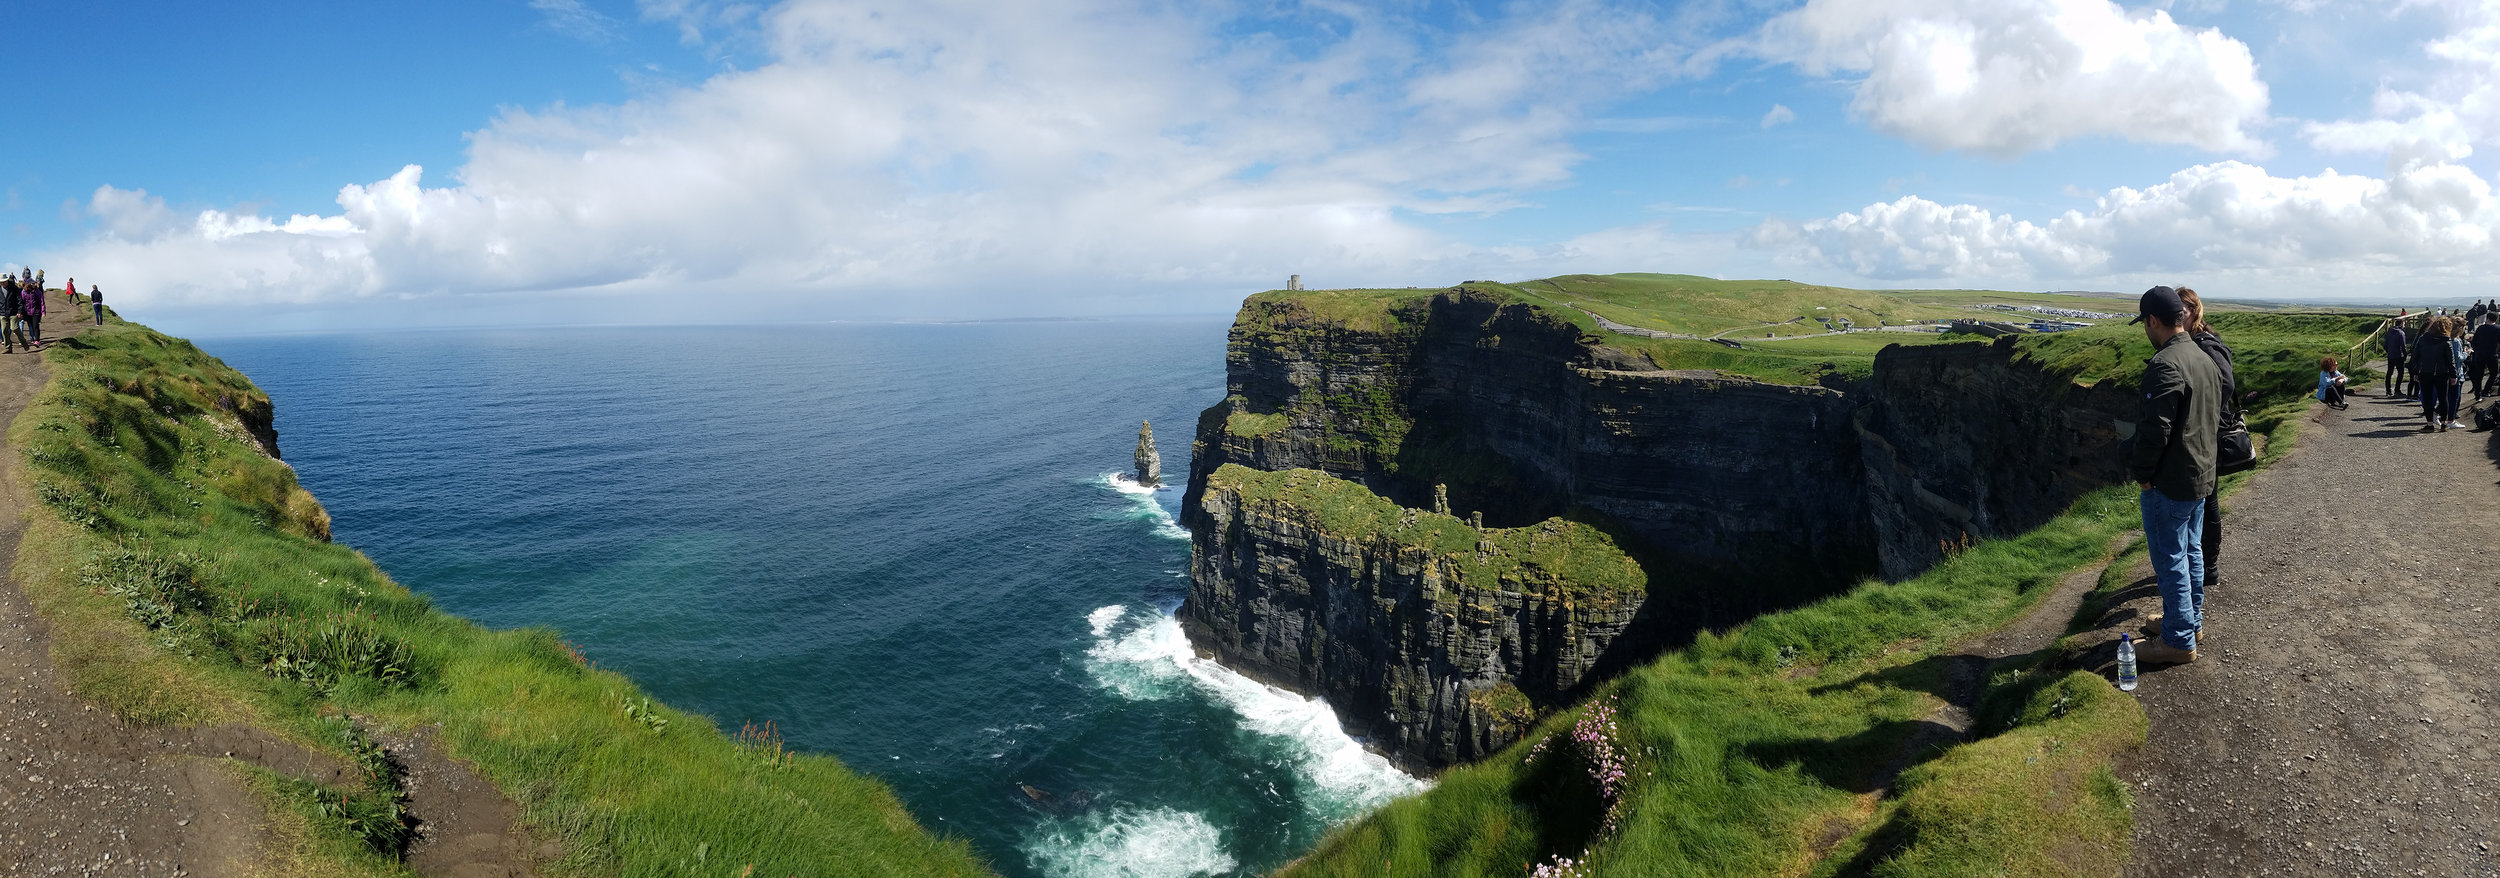 Cliff-of-Moher_Panoramic.jpg